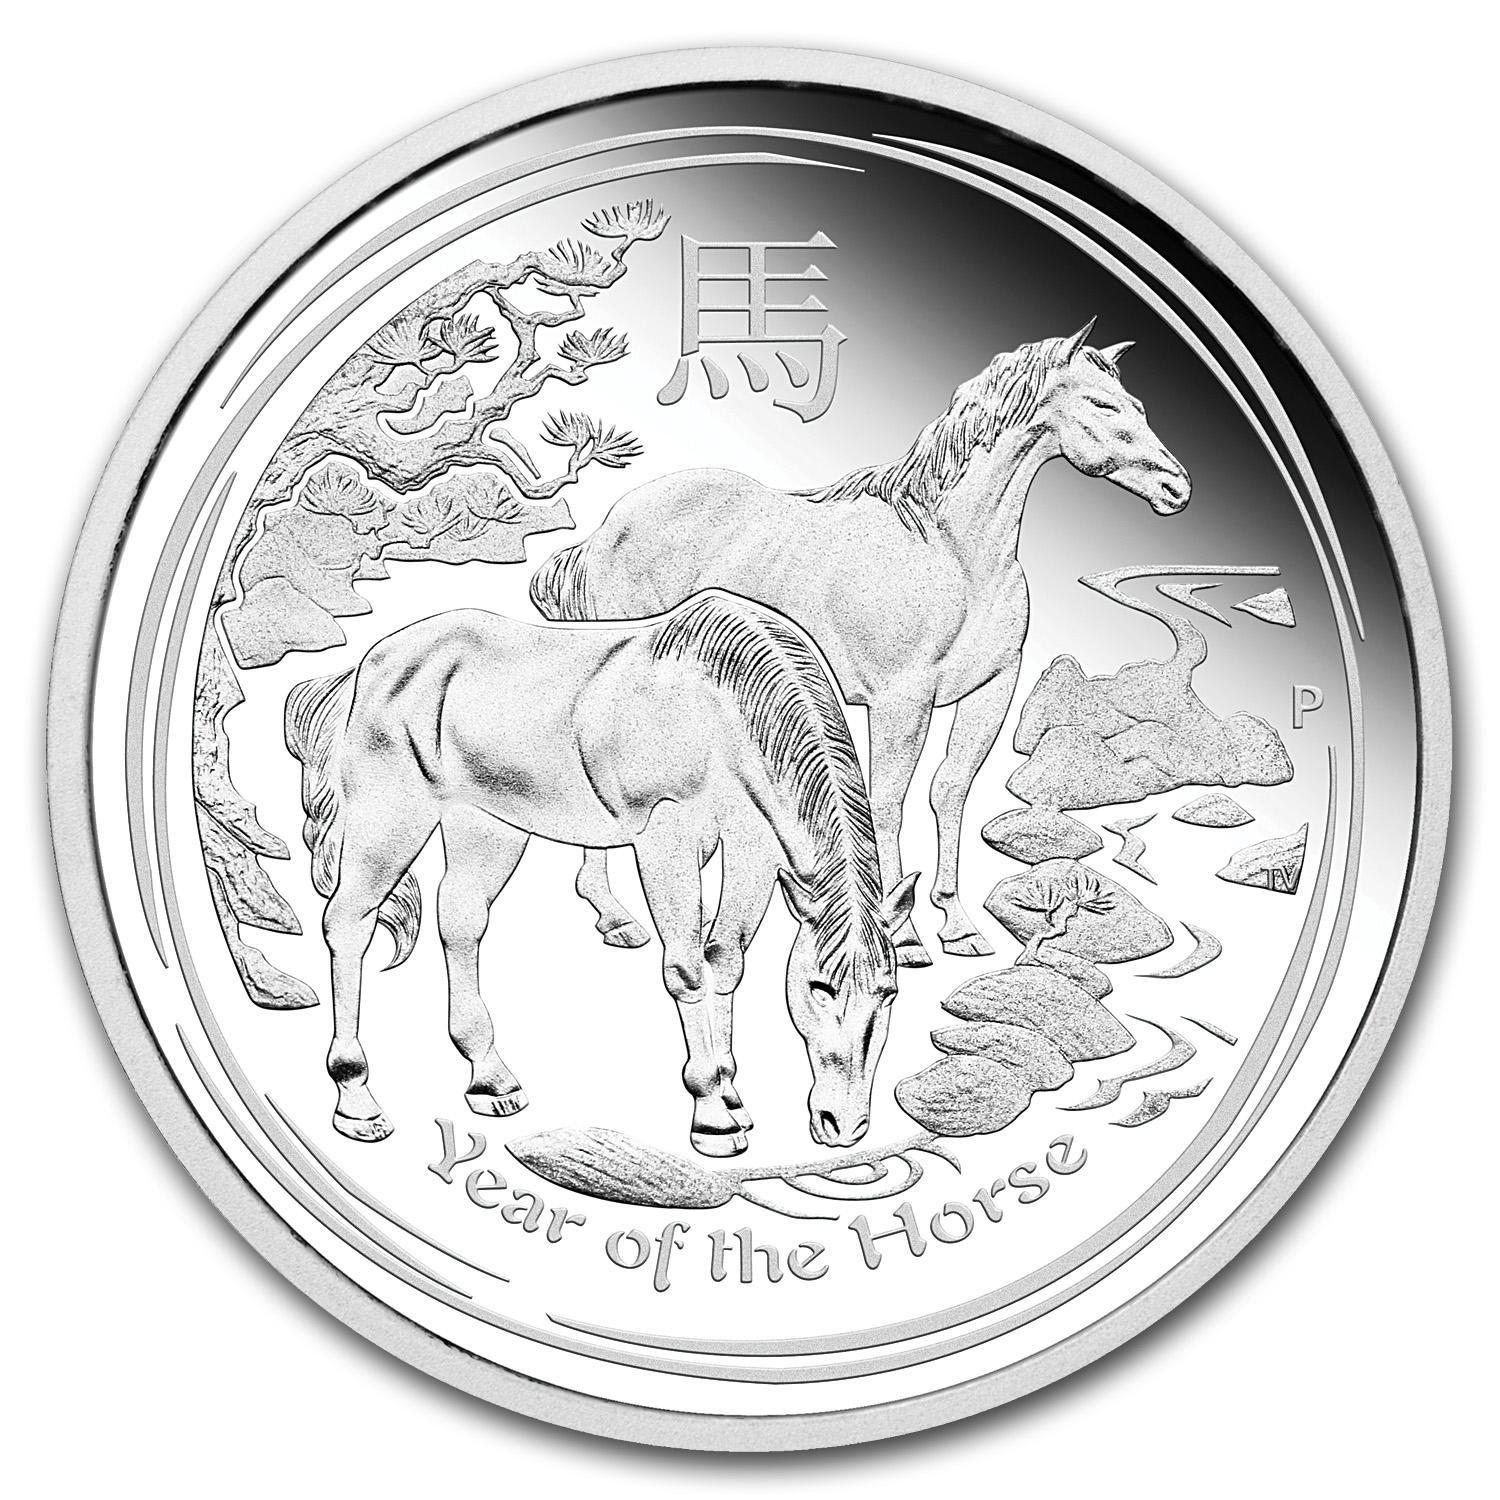 2014 1 Kilo Silver Australian Year of the Horse Proof (SII)